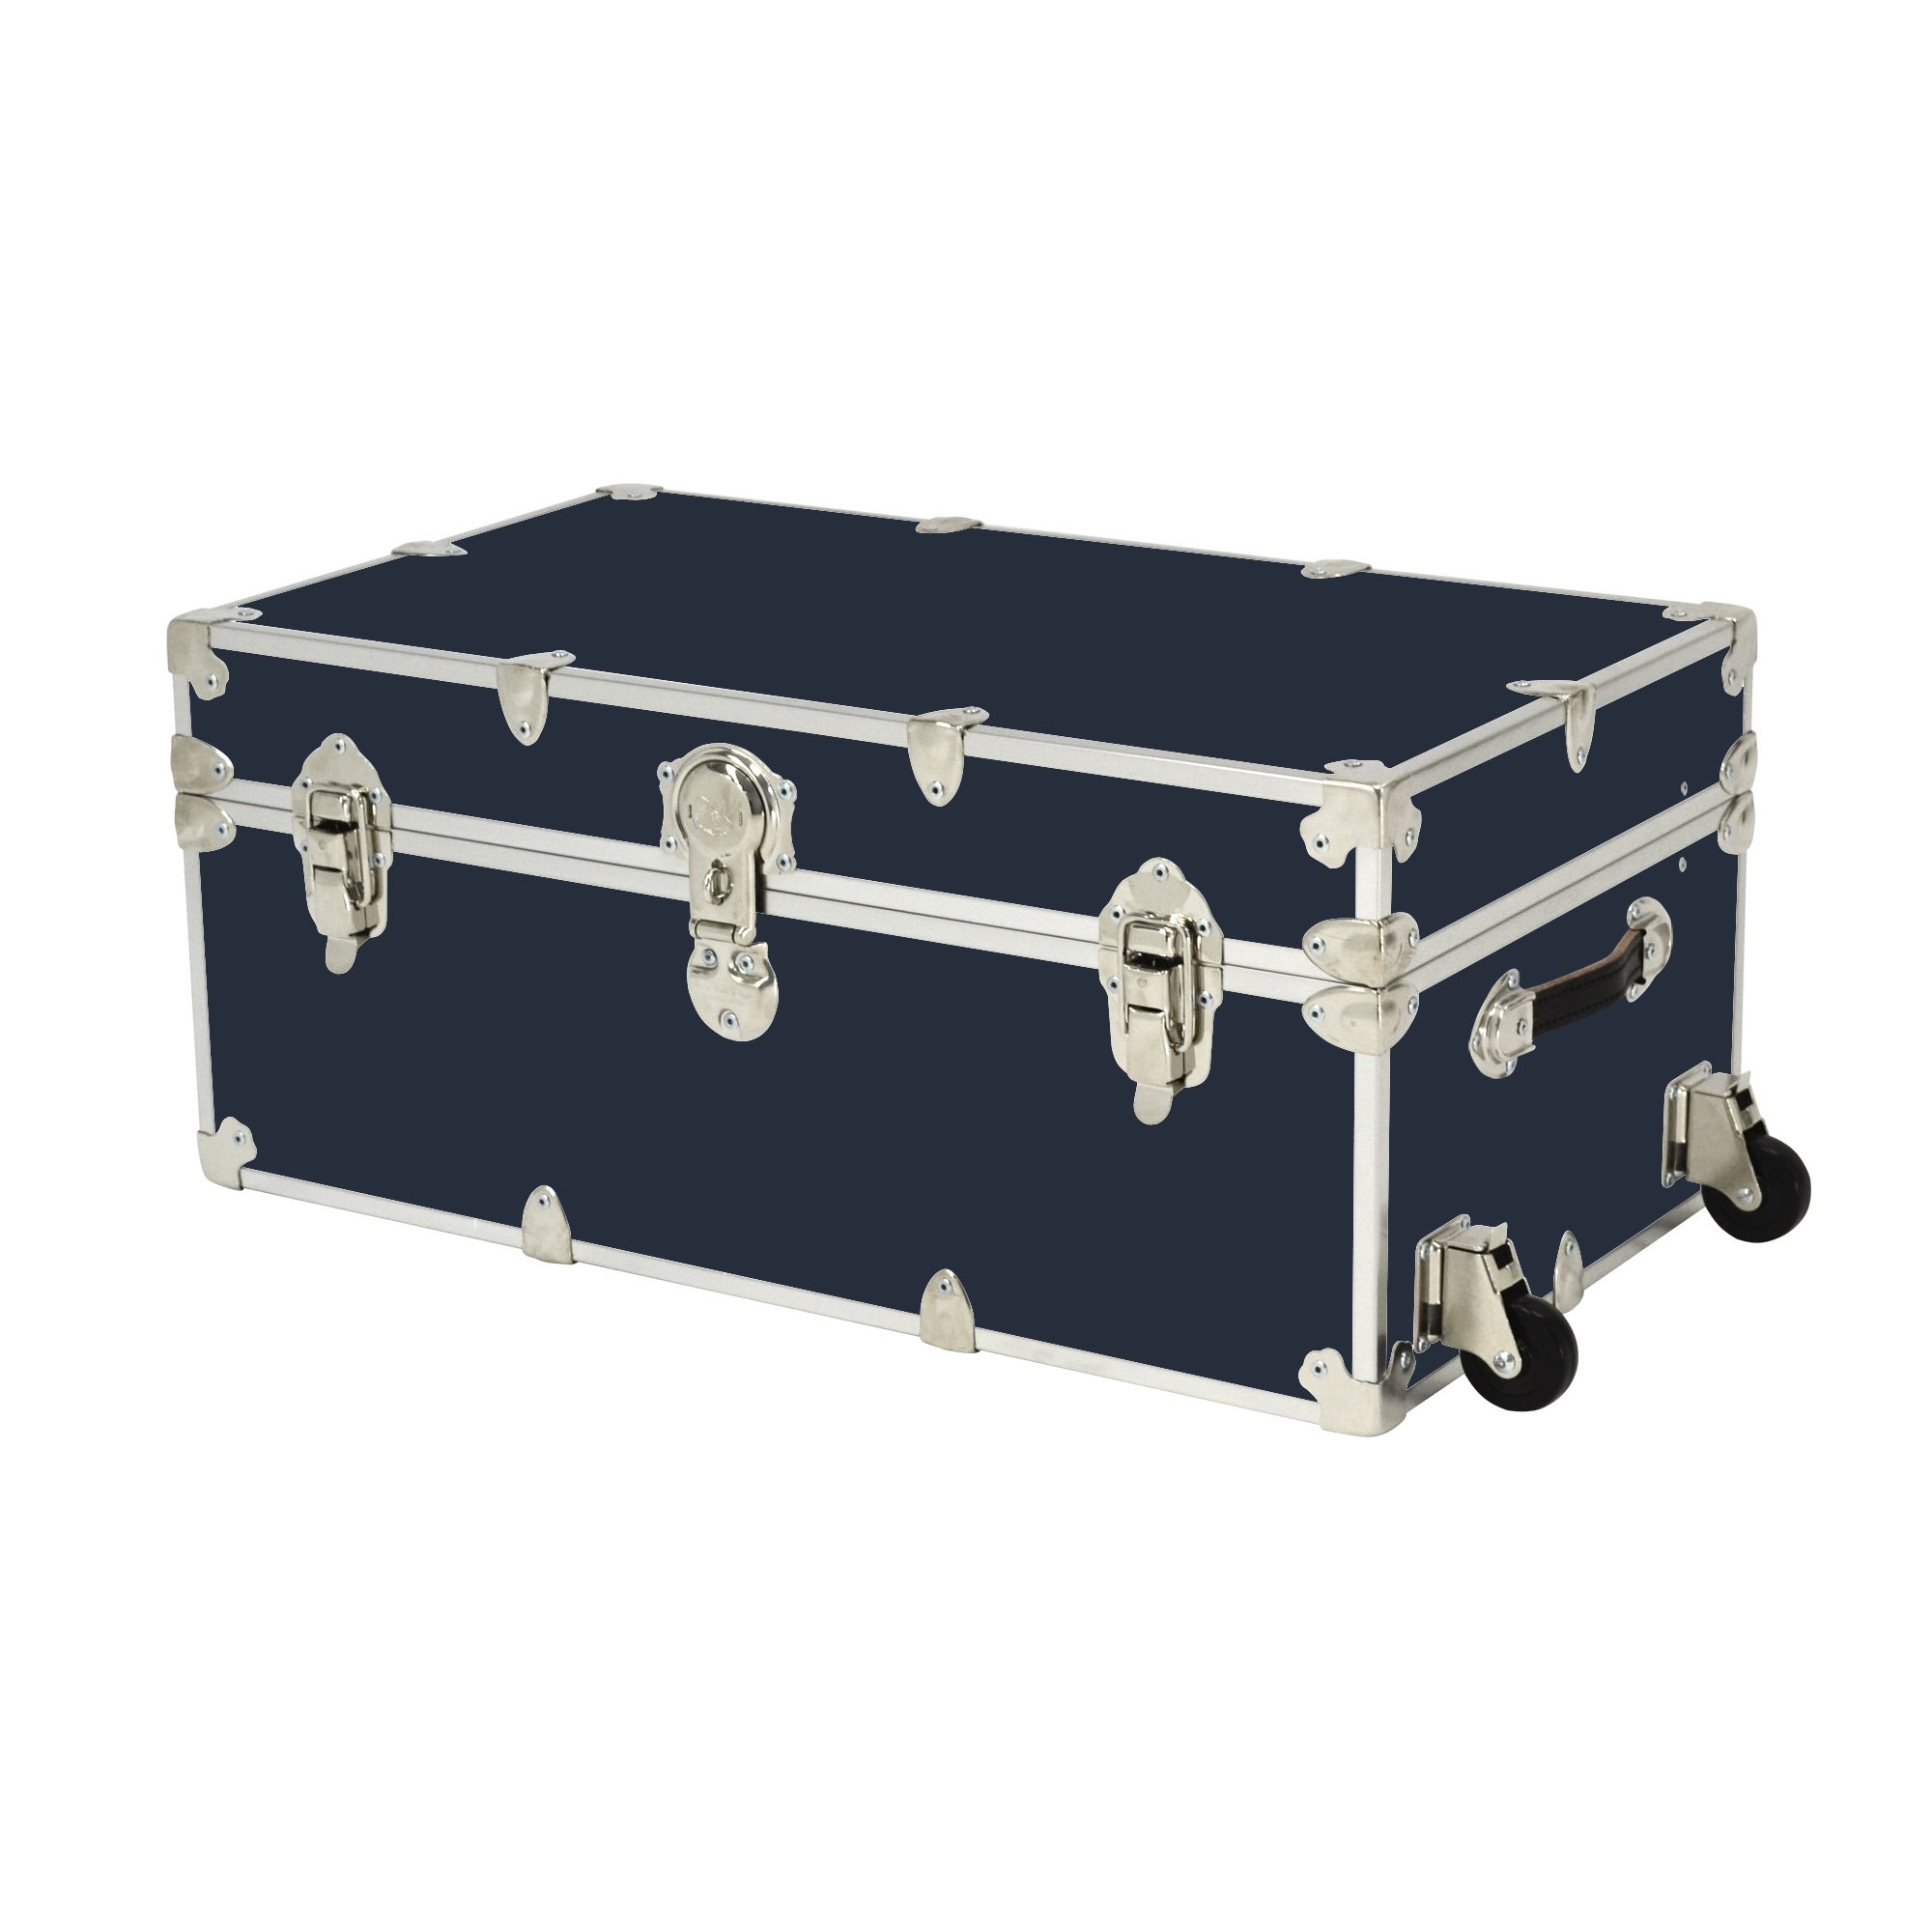 Rhino Trunk and Case Rhino Armor Large Trunk with Wheels, 32''X18''X14'', Navy Blue